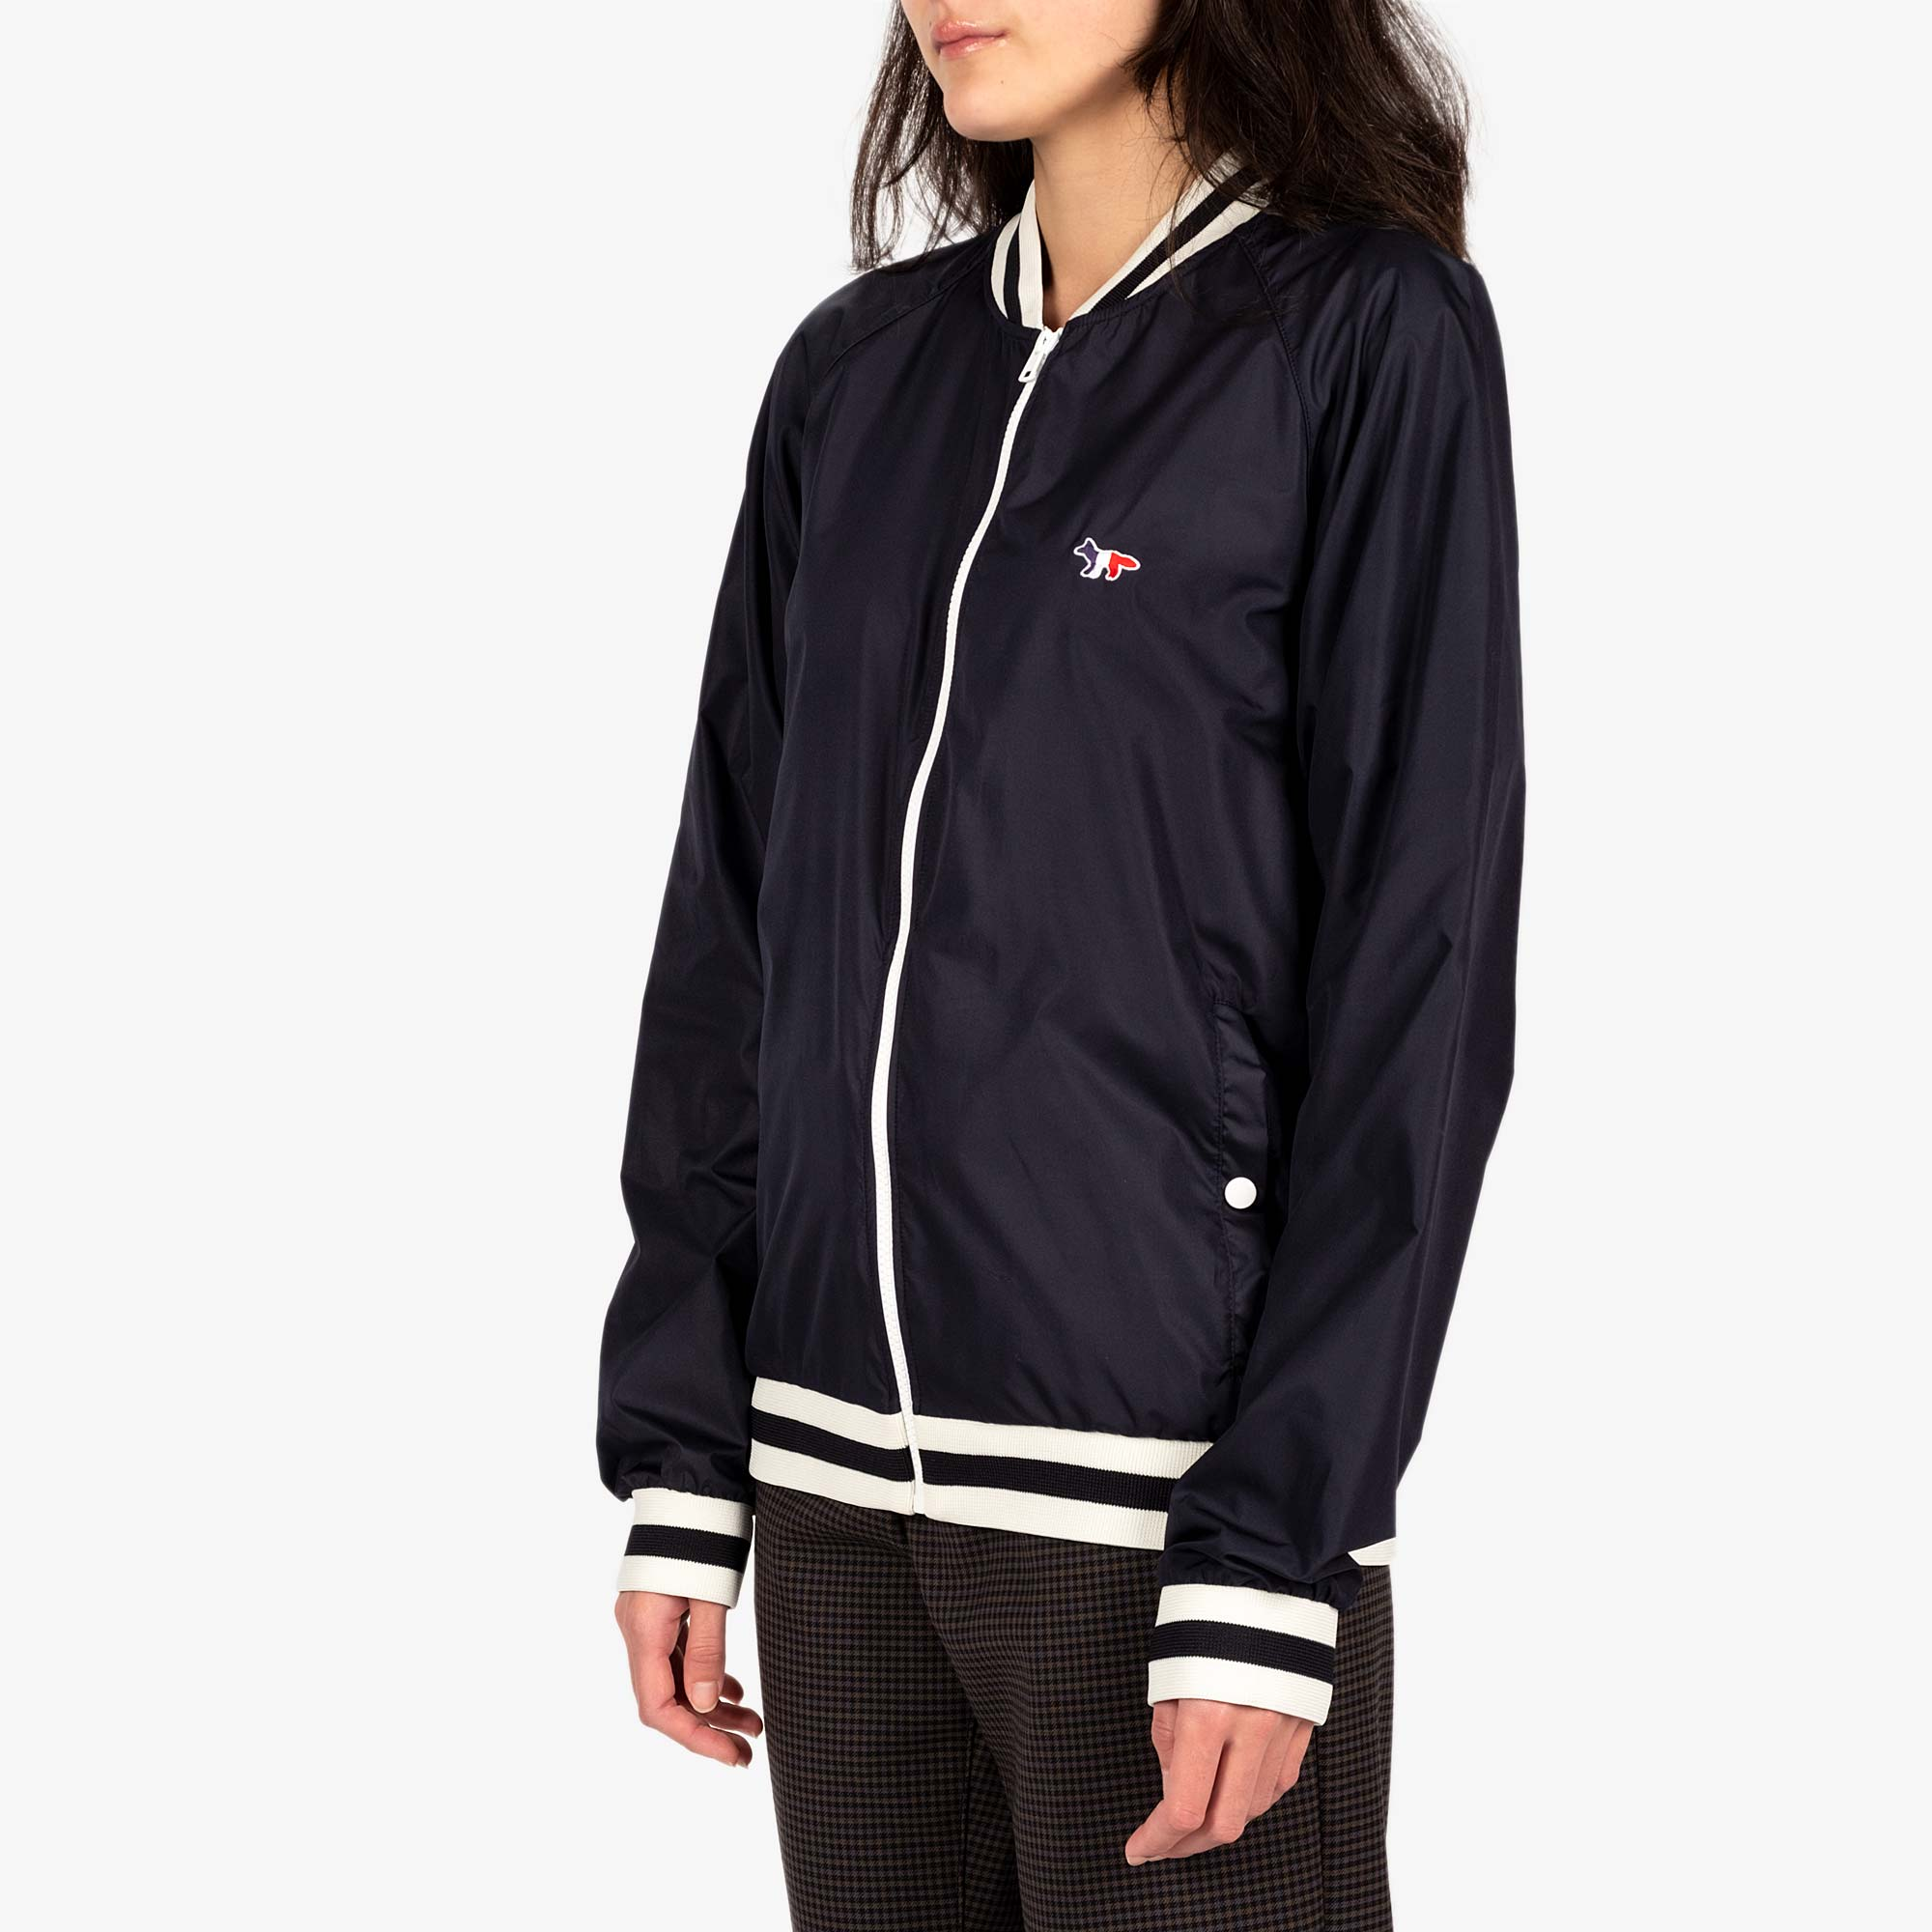 Maison Kitsune Womens Windbreaker - Navy 2